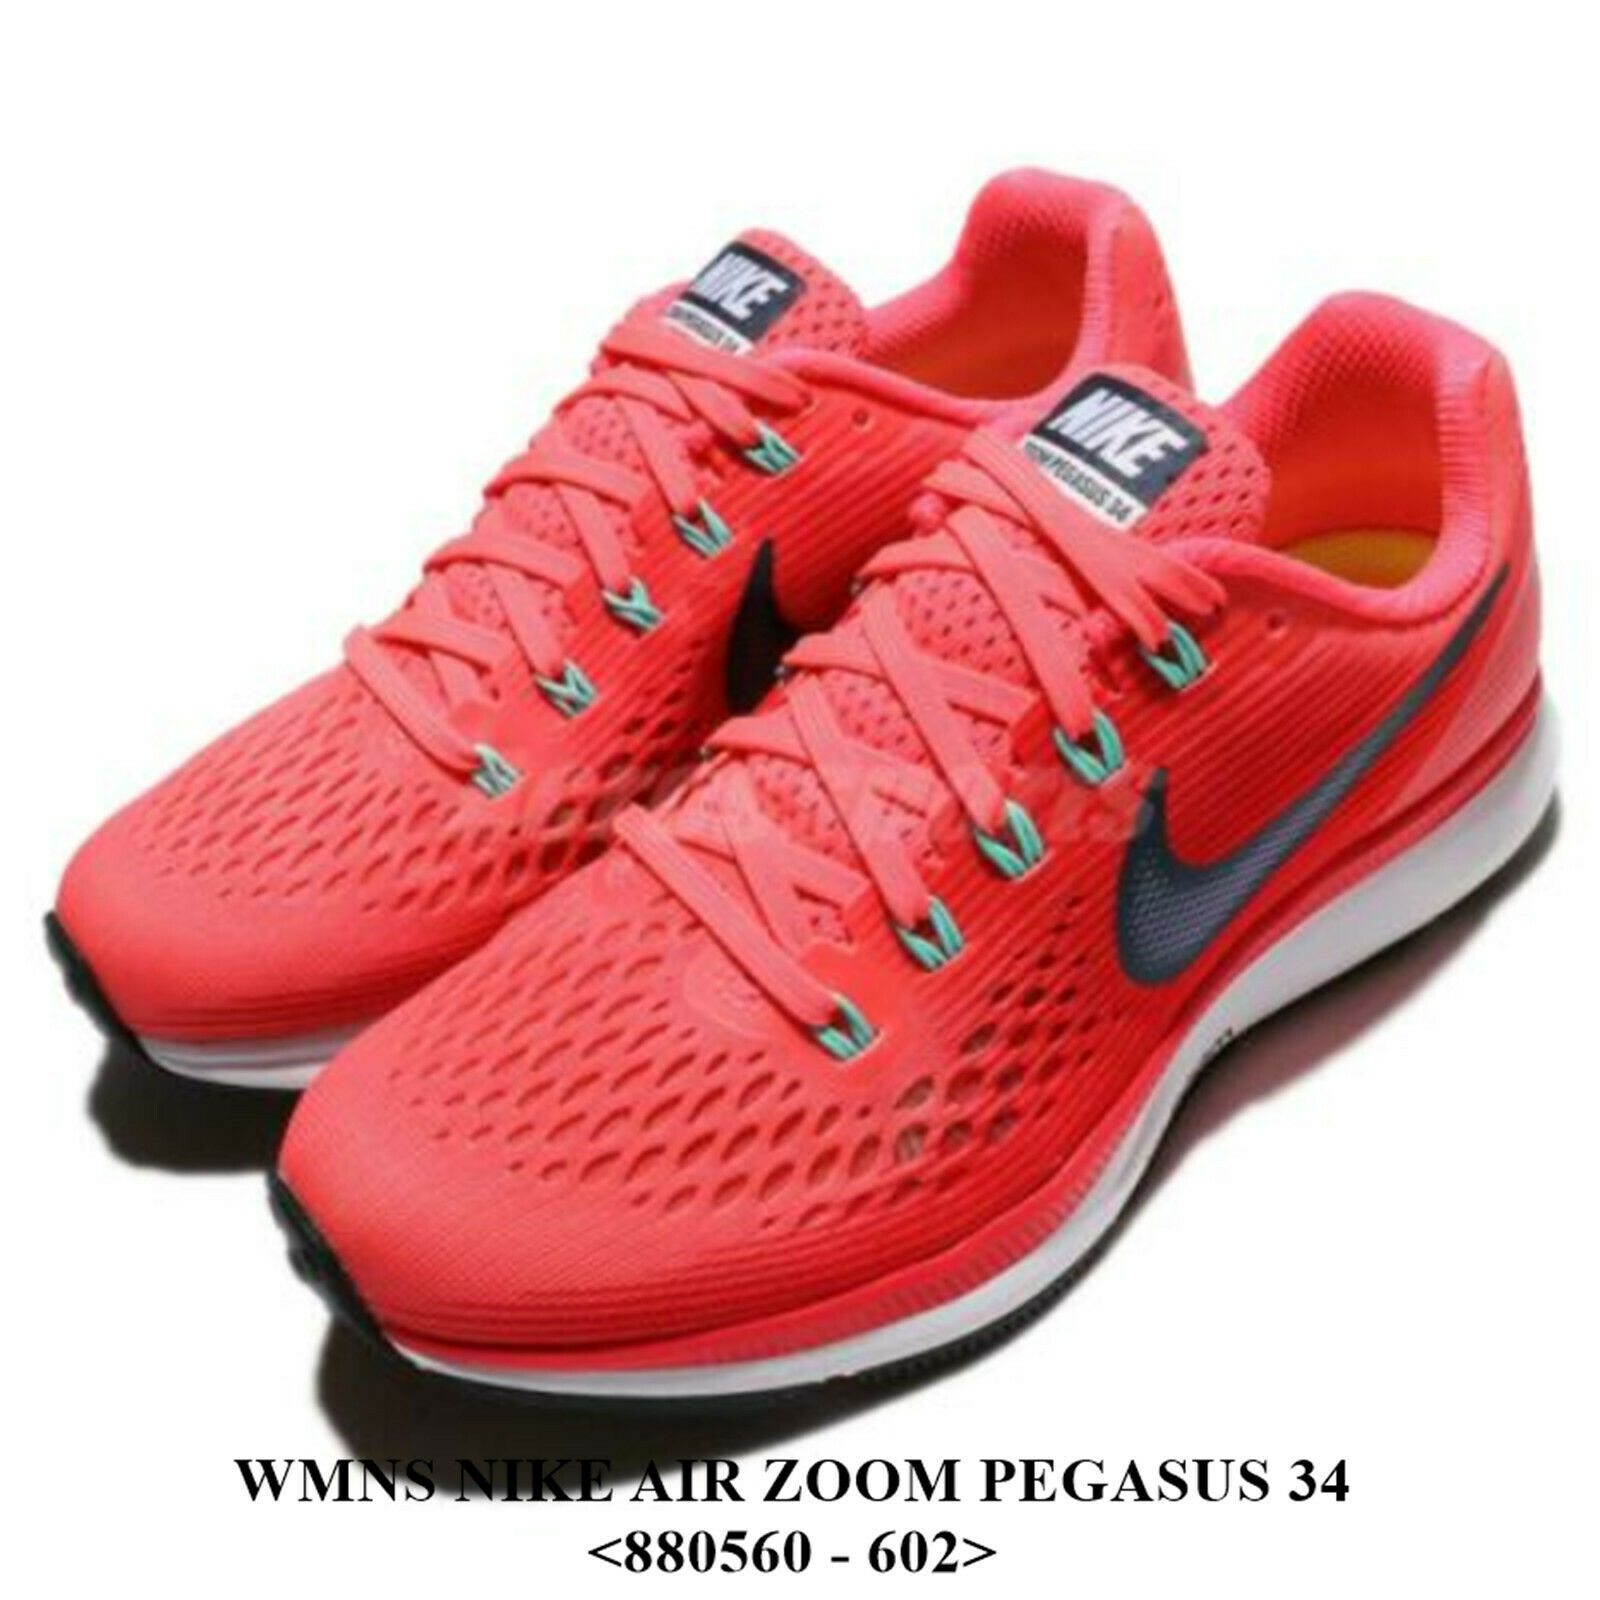 Serratura collina Quantità di  Women's NIKE AIR ZOOM PEGASUS 34 <880560 - 602>,RUNNING/CASUAl Shoe.NEW  WITH BOX for sale online